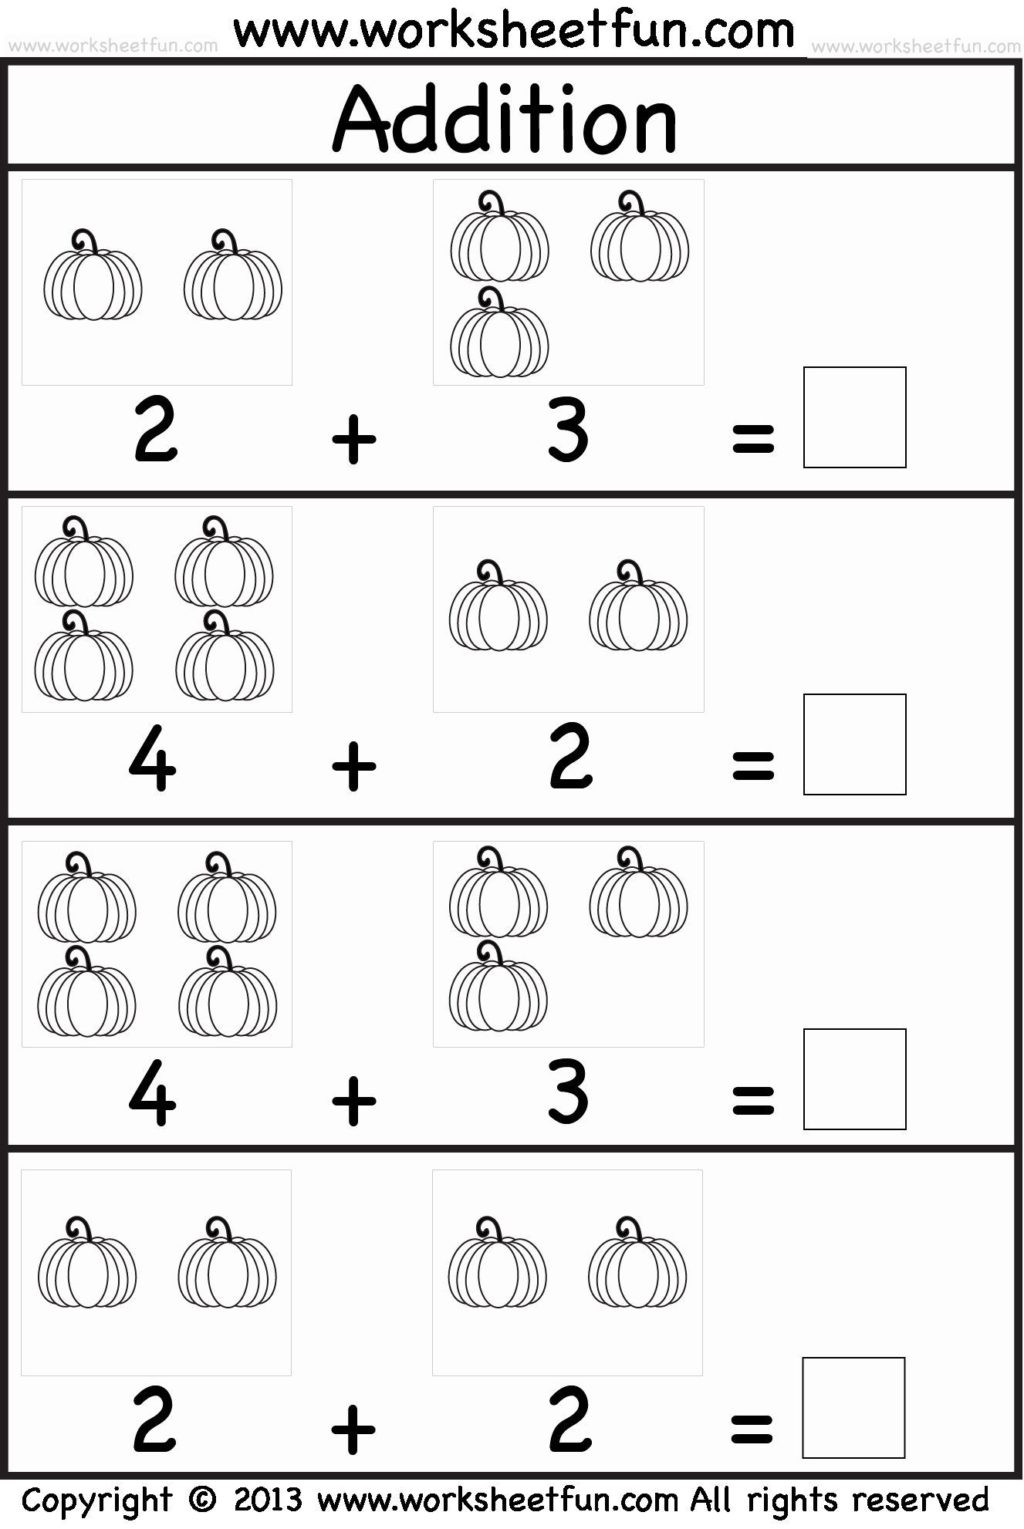 K5 Learning Math Grade 4 Worksheet K5 Learning Worksheets Printable and Activities